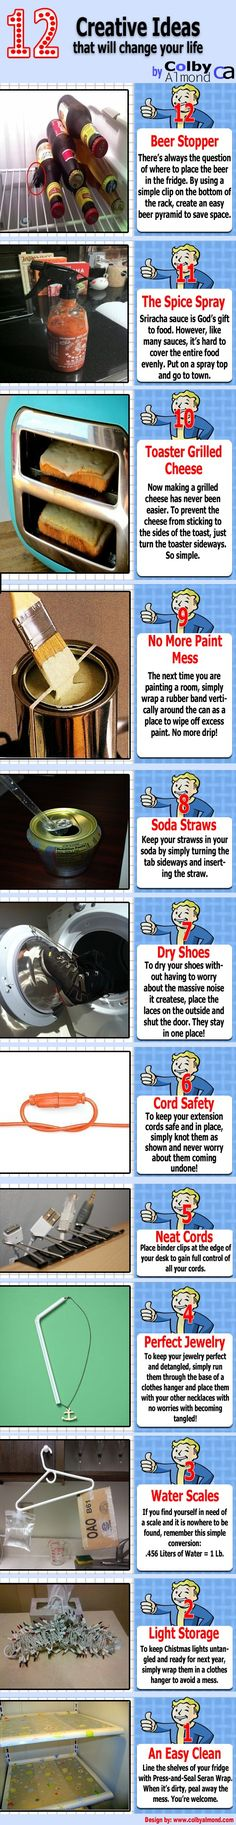 smart ideas that make you feel stupid...